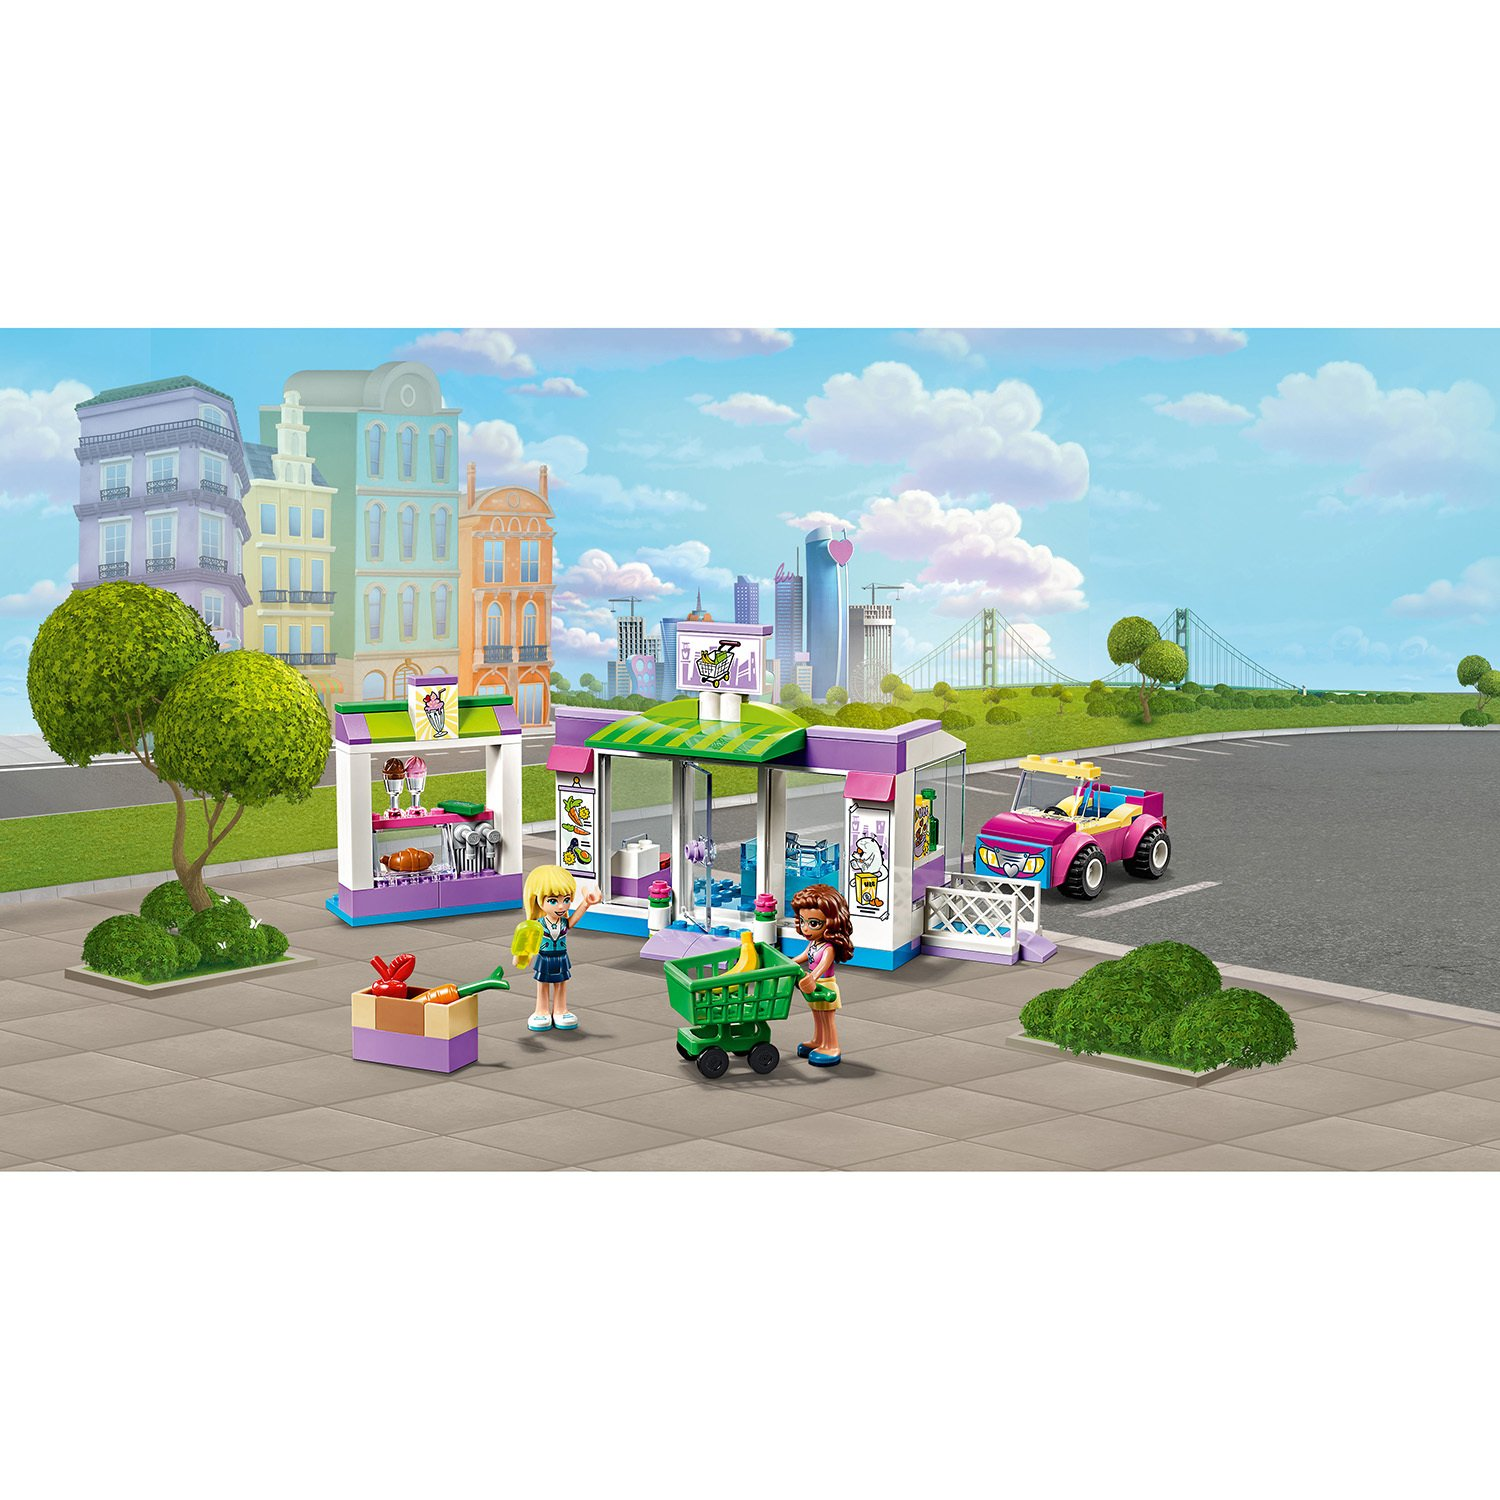 Lego Friends 41362 Супермаркет Хартлейк Сити